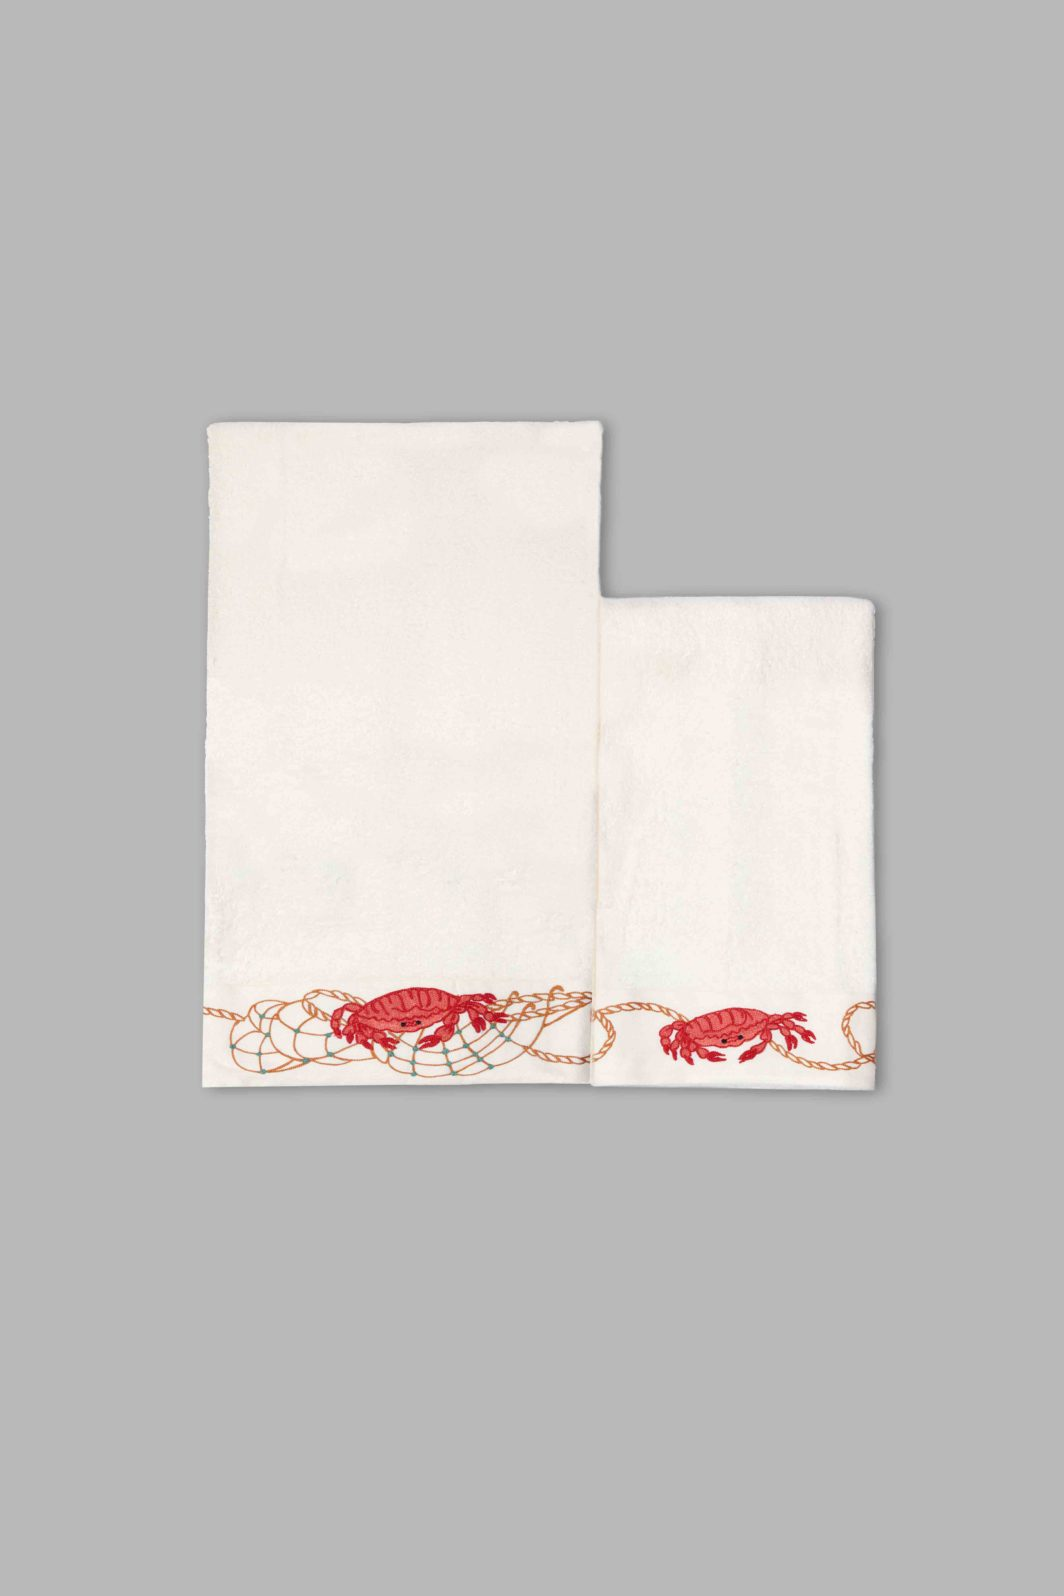 CRAB BATH TOWELS SET - 2PCS